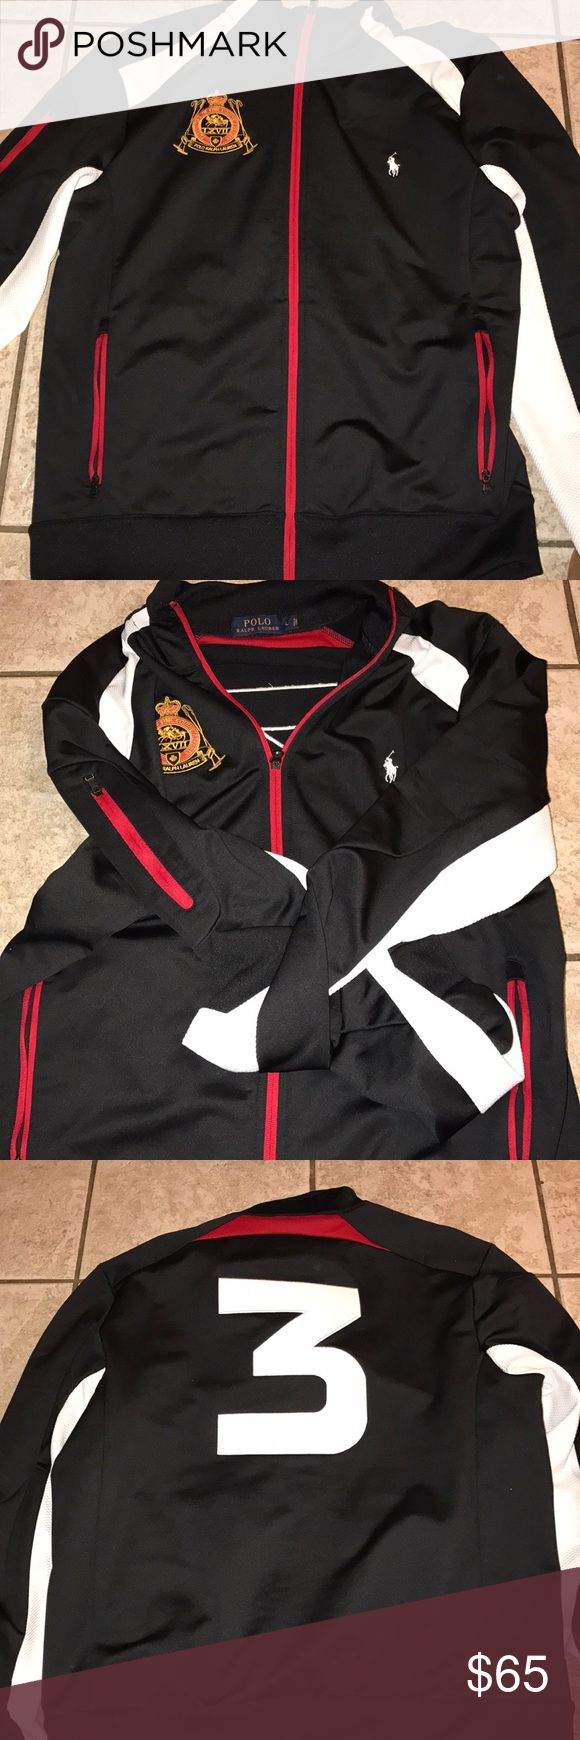 Polo sports jacket Worn once Polo by Ralph Lauren Jackets & Coats Utility Jackets